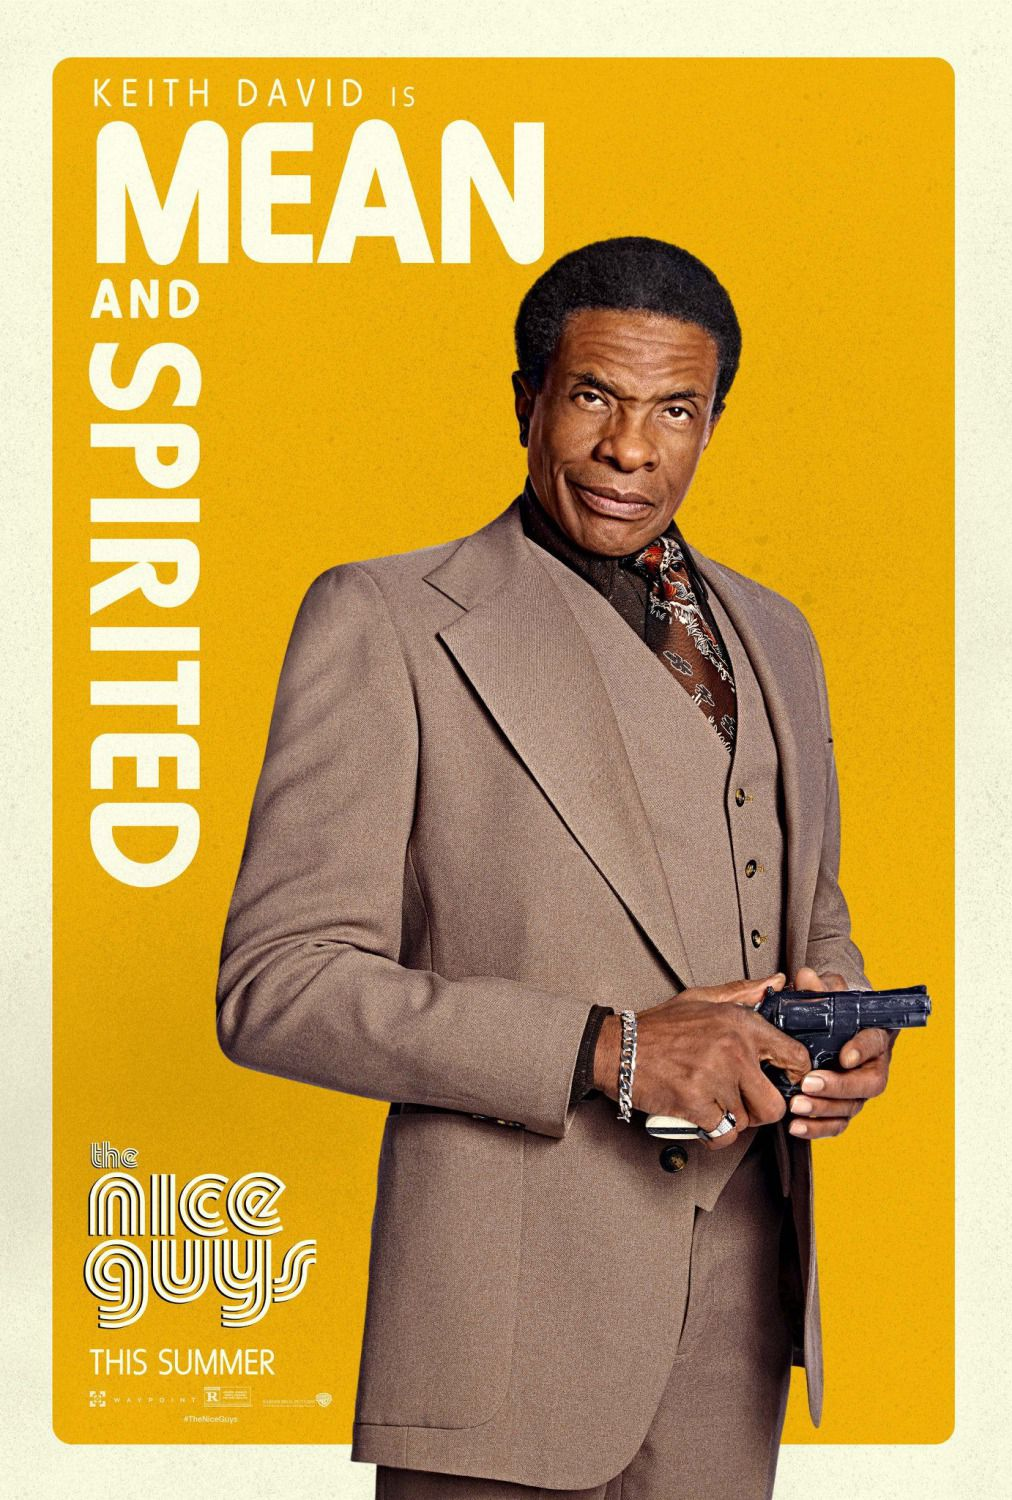 Nice Guys - Keith David - film poster